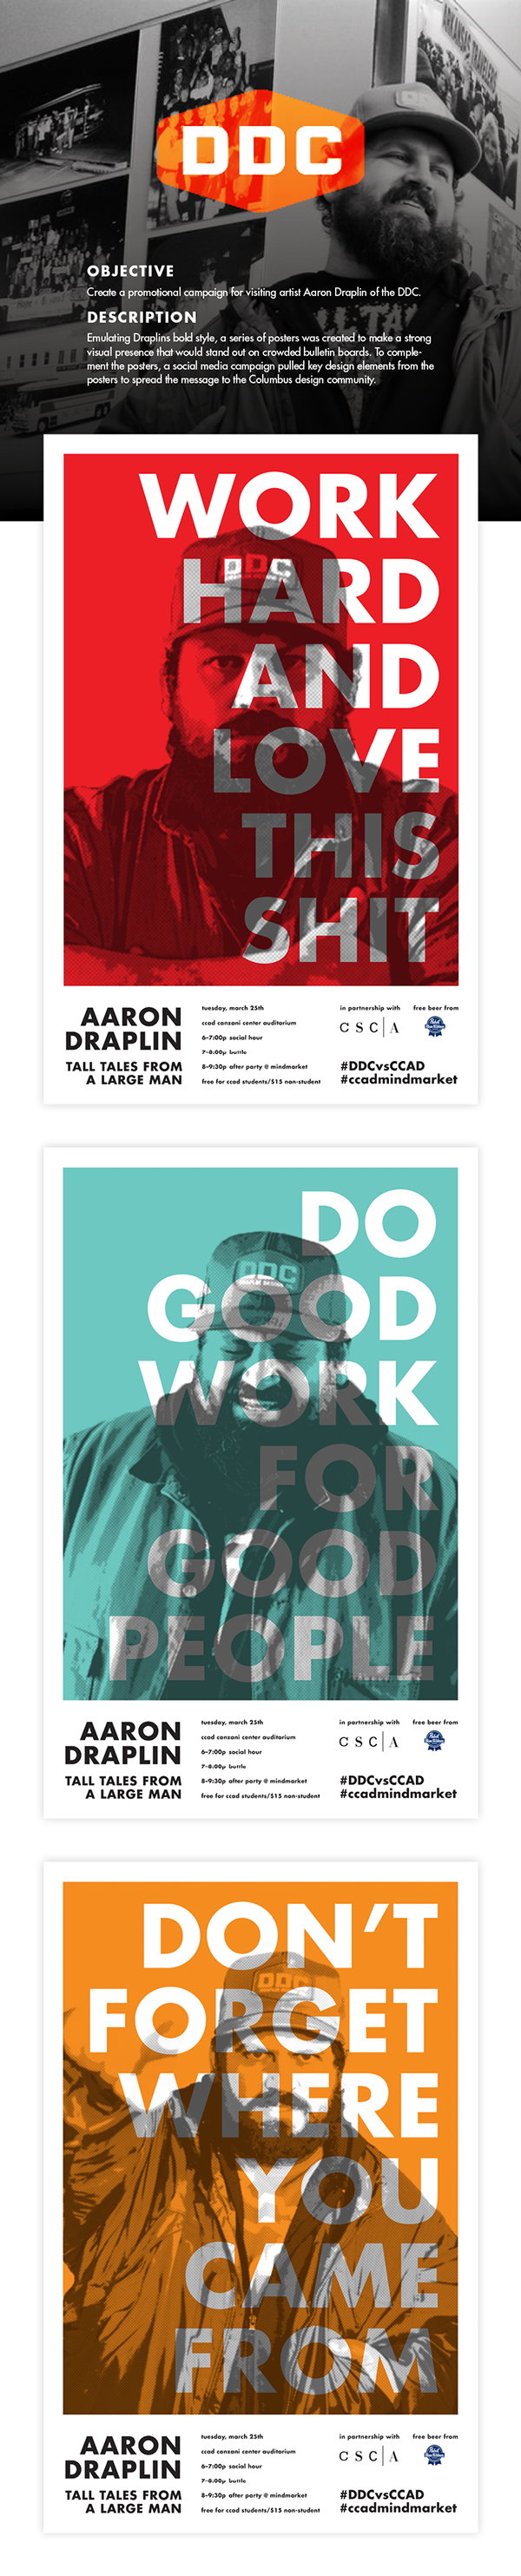 2 color poster design - A Series Of Promotions For Visiting Artist Aaron Draplin Of The Draplin Design Company Descriptioninitially This Project Started As A Quick Class Project